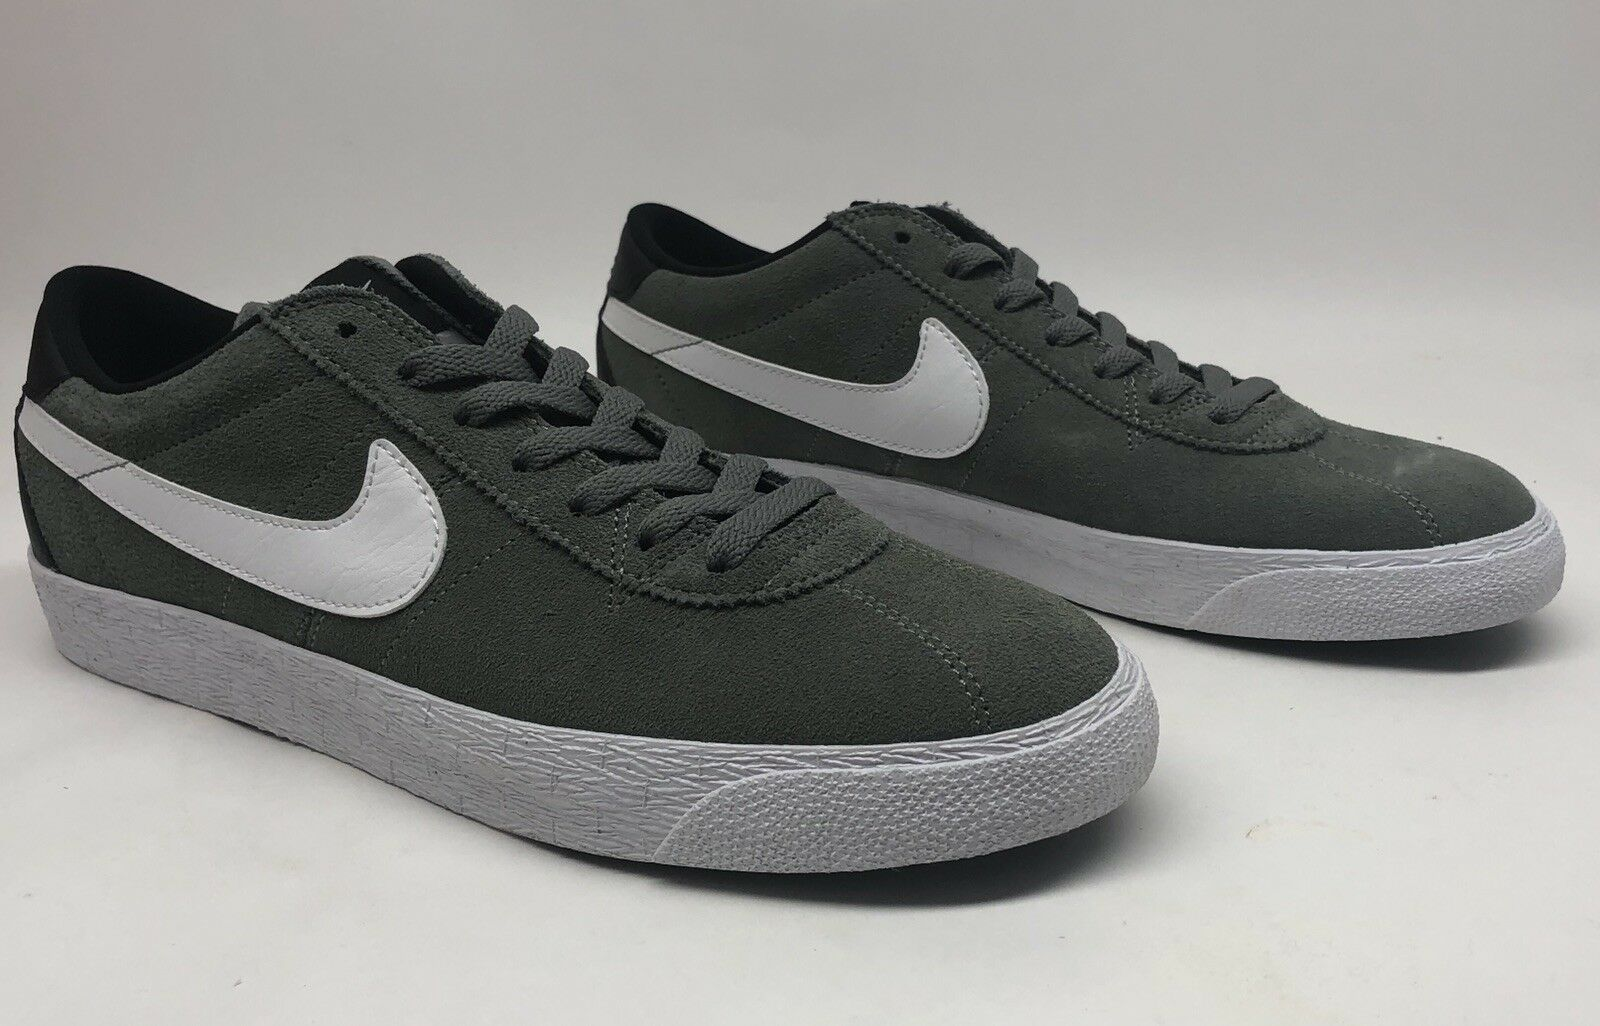 NIke SB Bruin Zoom Prm Skate SE Tumbled Grey/White/Black Mens Skate Prm Shoes SIZE 10 823490